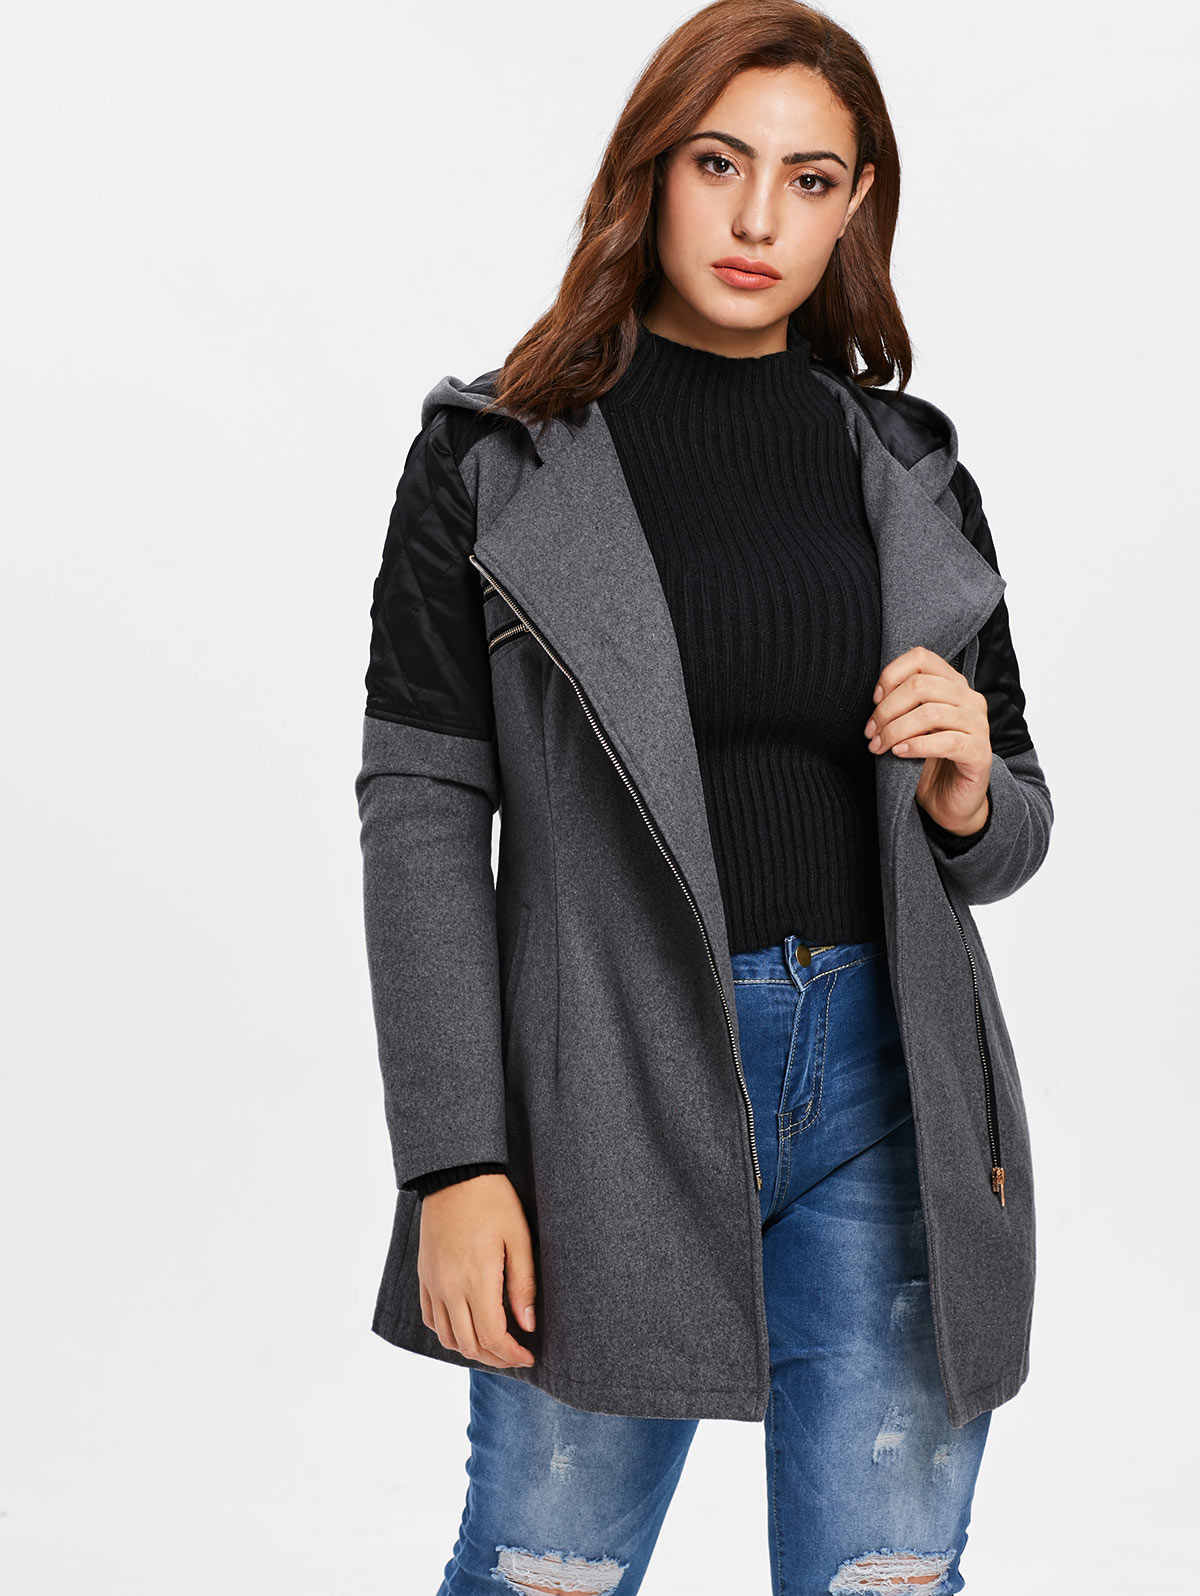 Wipalo Plus Size Contrast Zippered Woollen Coat Women Outerwear Winter Hooded Long Sleeve Patchwork Coats Overcoat 2018 Outwear